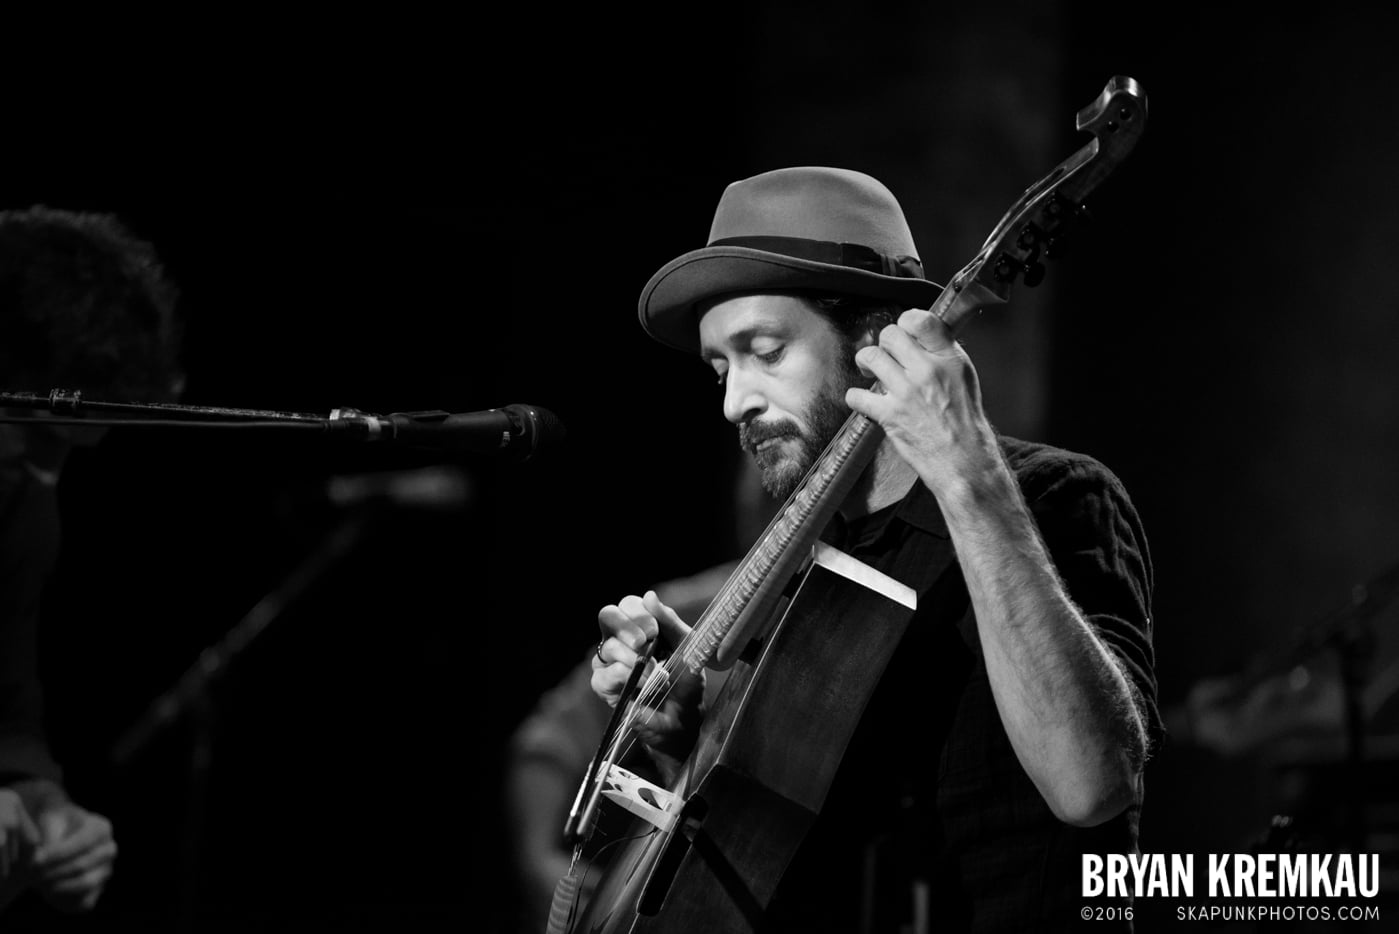 Carbon Leaf @ City Winery, NYC - July 11th 2013 - Bryan Kremkau (57)